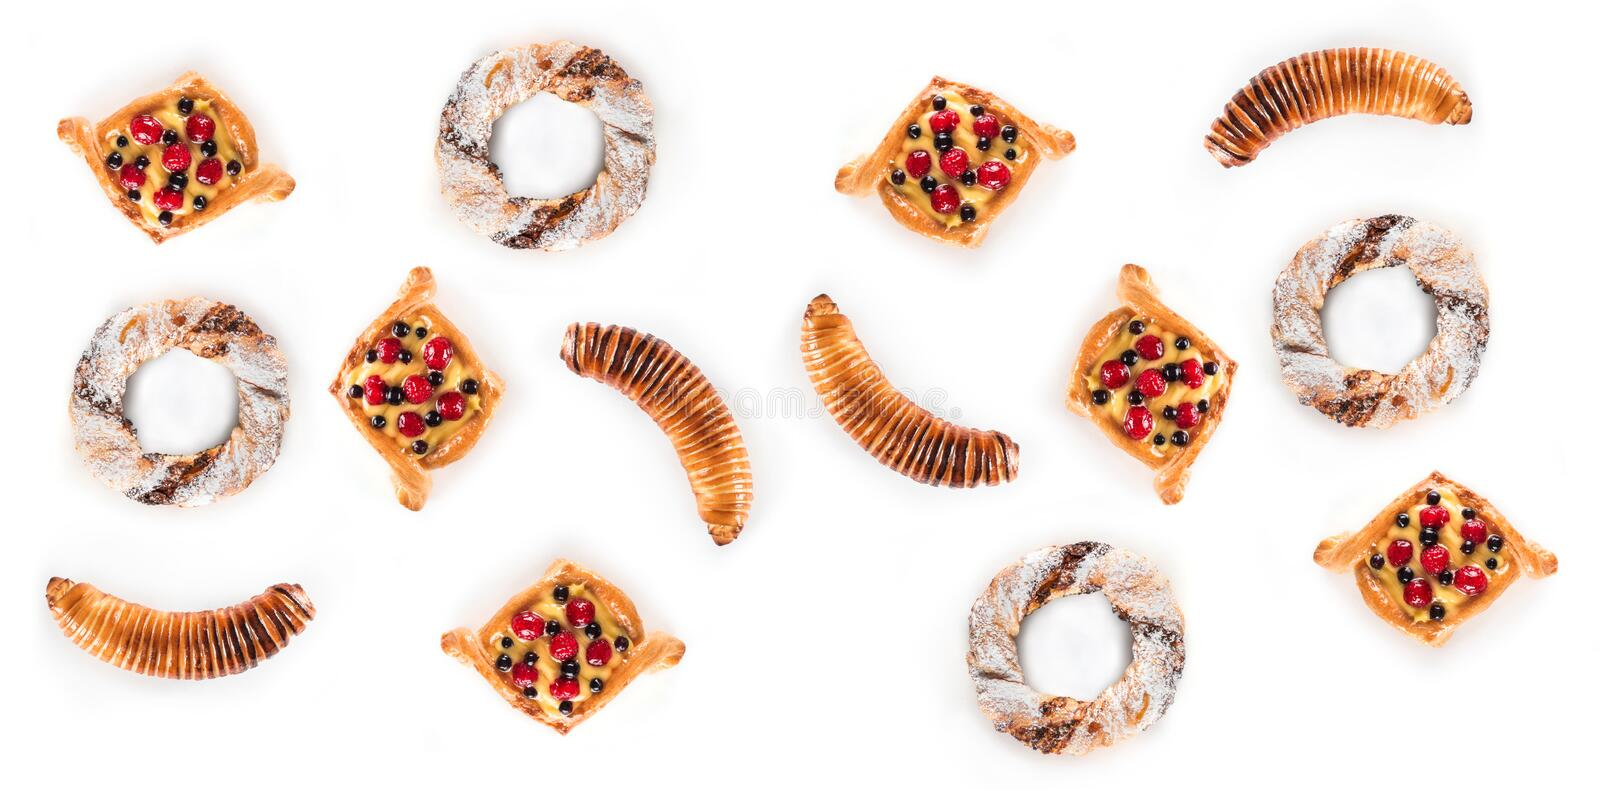 Top view of many delicious pastries isolated on white background royalty free stock photos